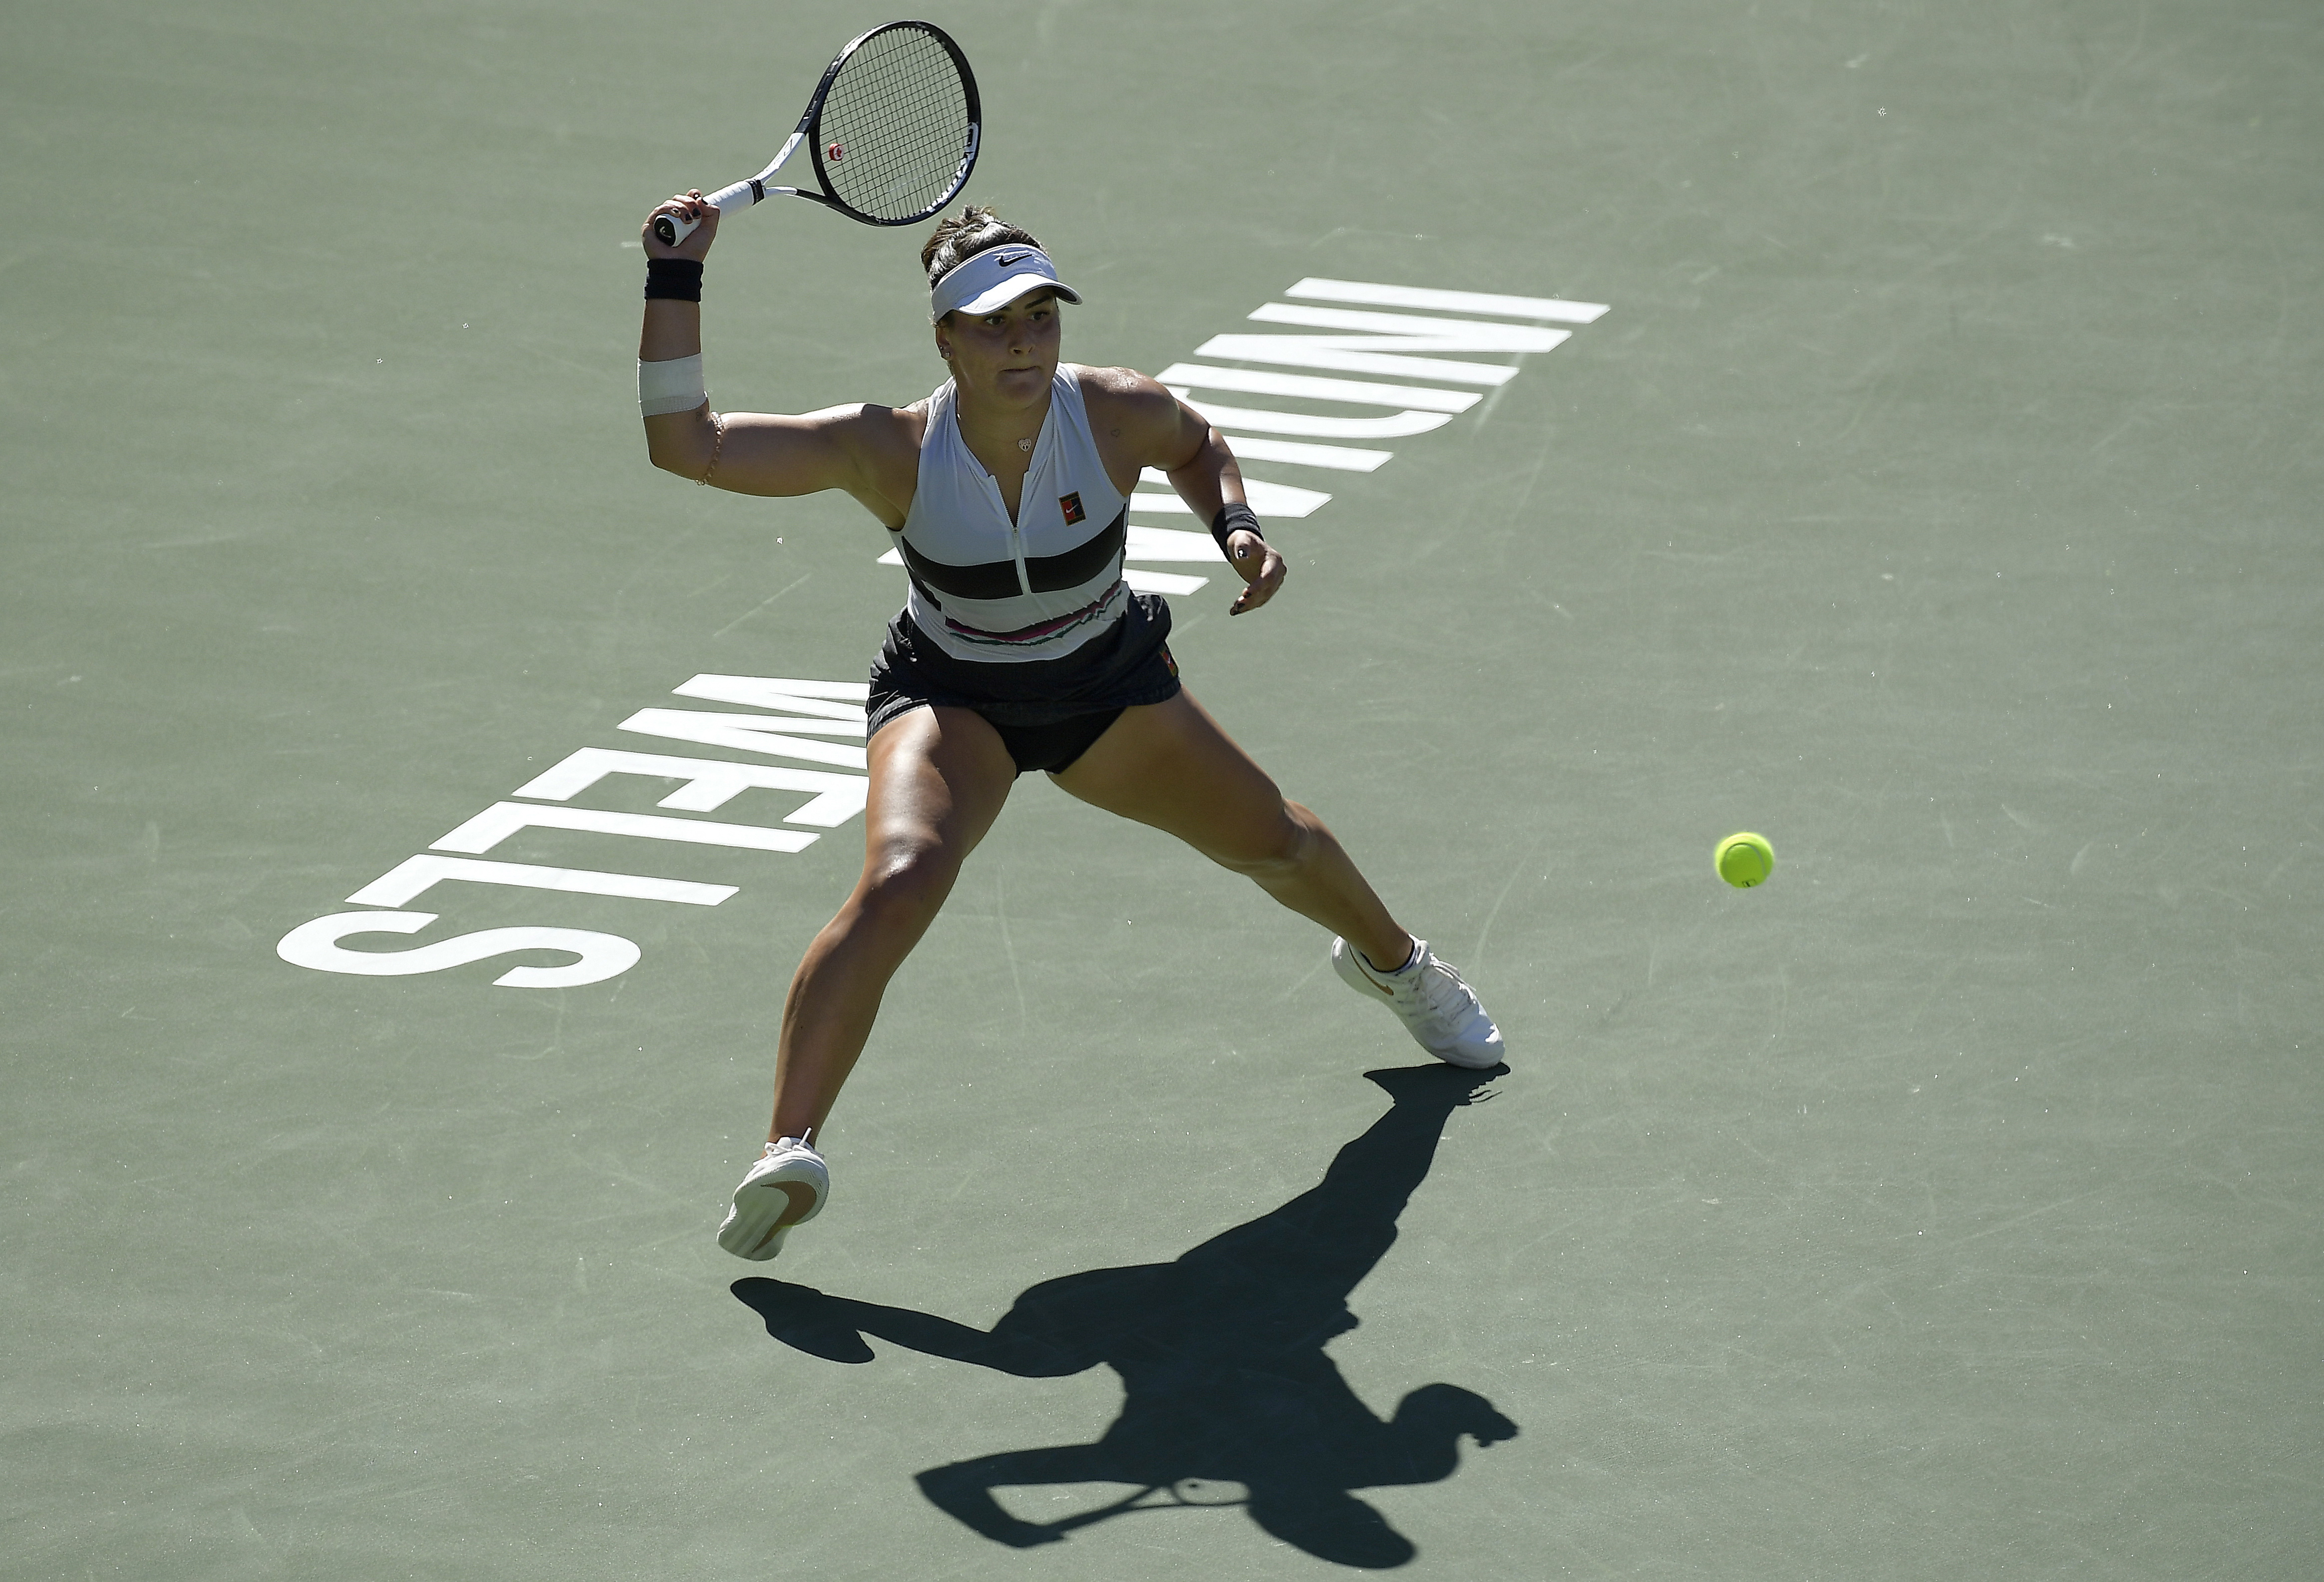 Canadian teen Bianca Andreescu makes history in winning title at Indian Wells